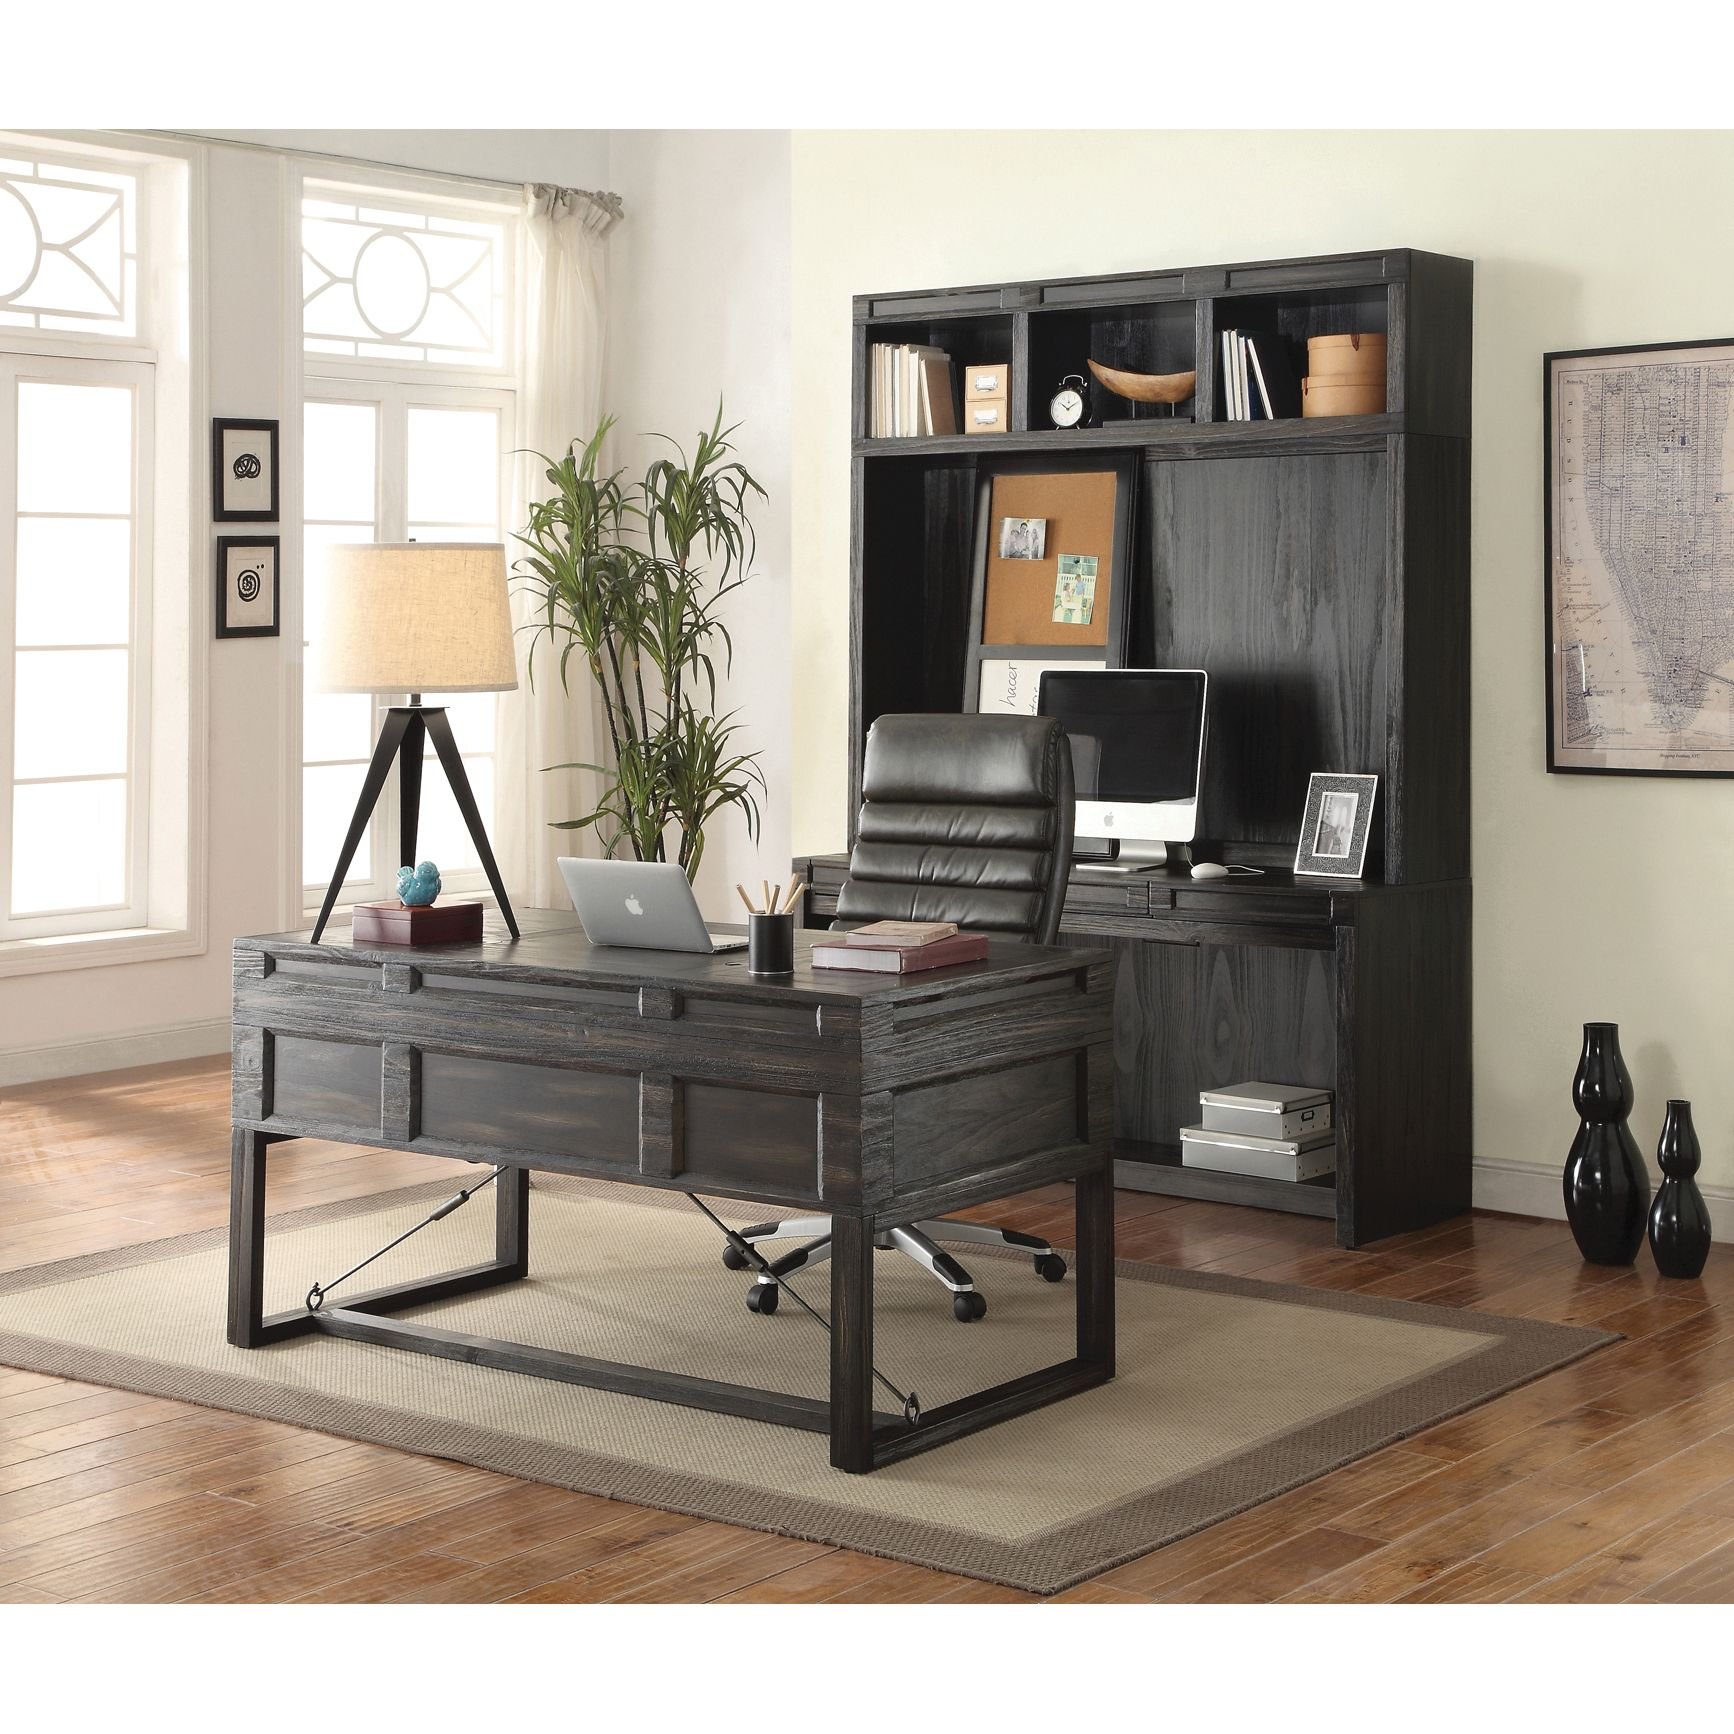 Awesome Cosco Home & Office Products